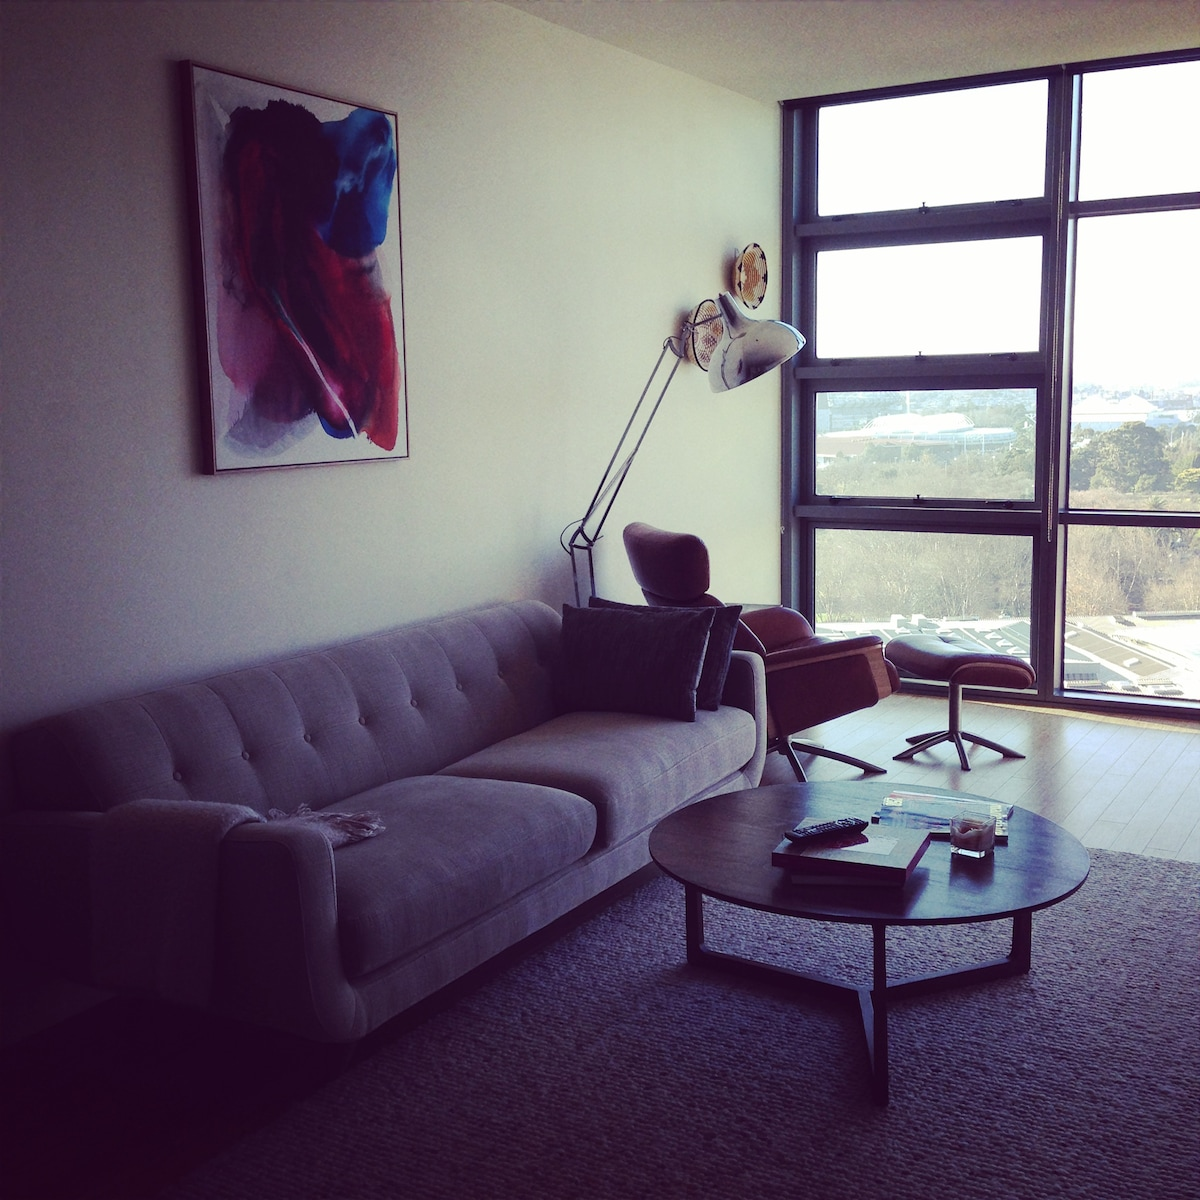 Living room with new furniture and deco